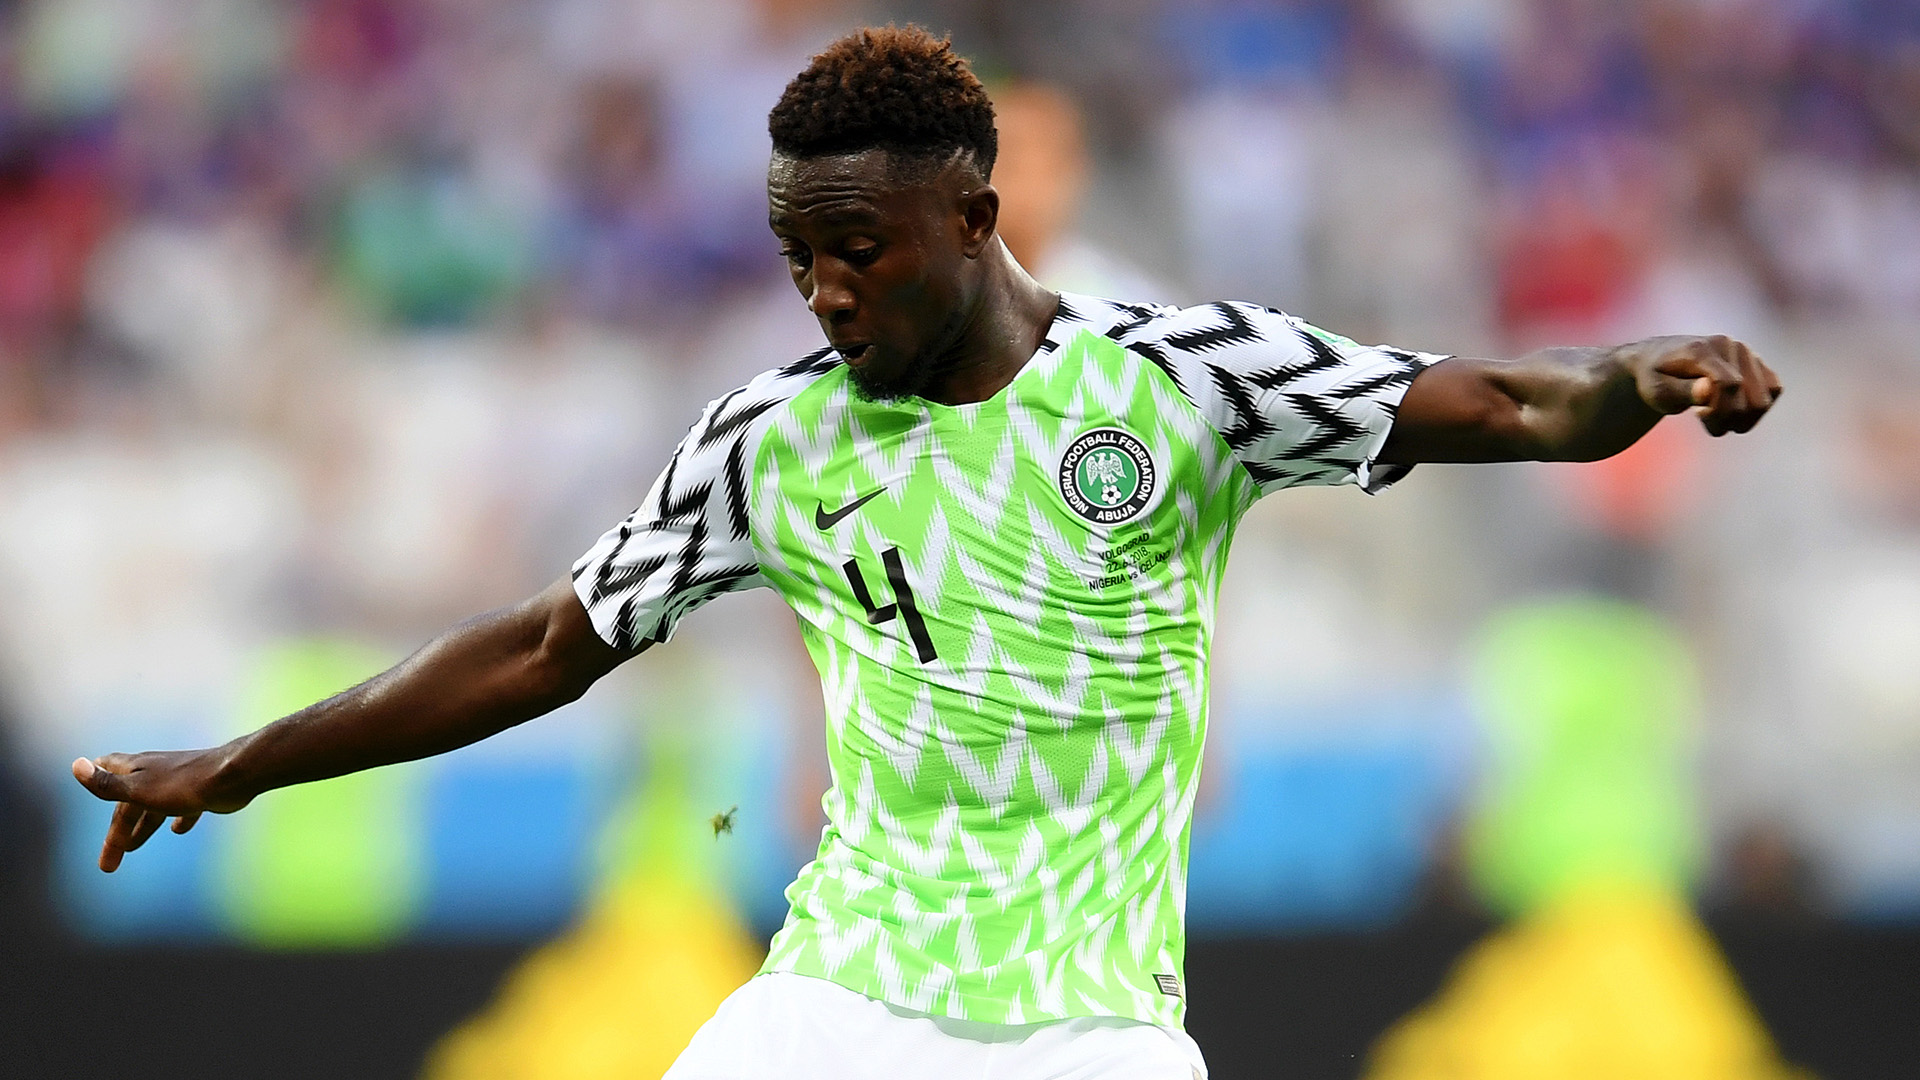 Leicester City's Ndidi ruled out of Nigeria action with groin injury |  Goal.com